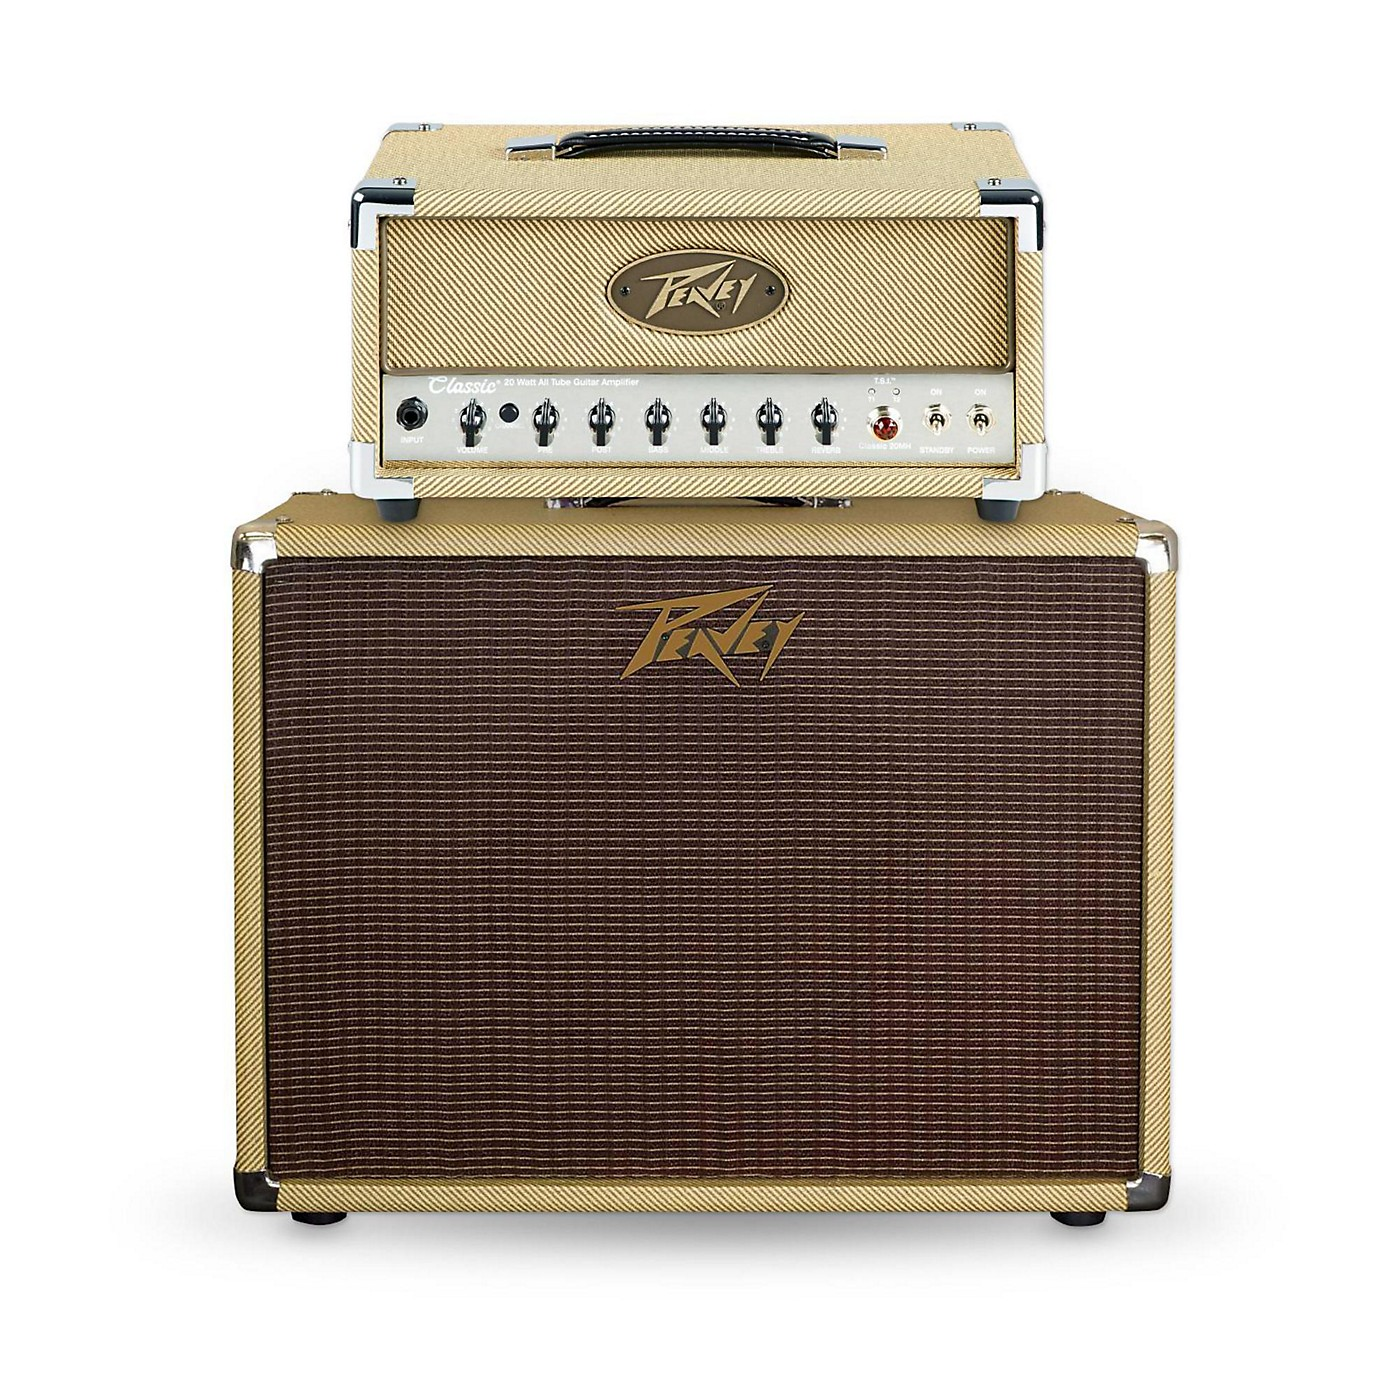 Peavey Classic 20 Micro 20W Tube Guitar Amp Head with 60W 1x12 Guitar Speaker Cabinet thumbnail